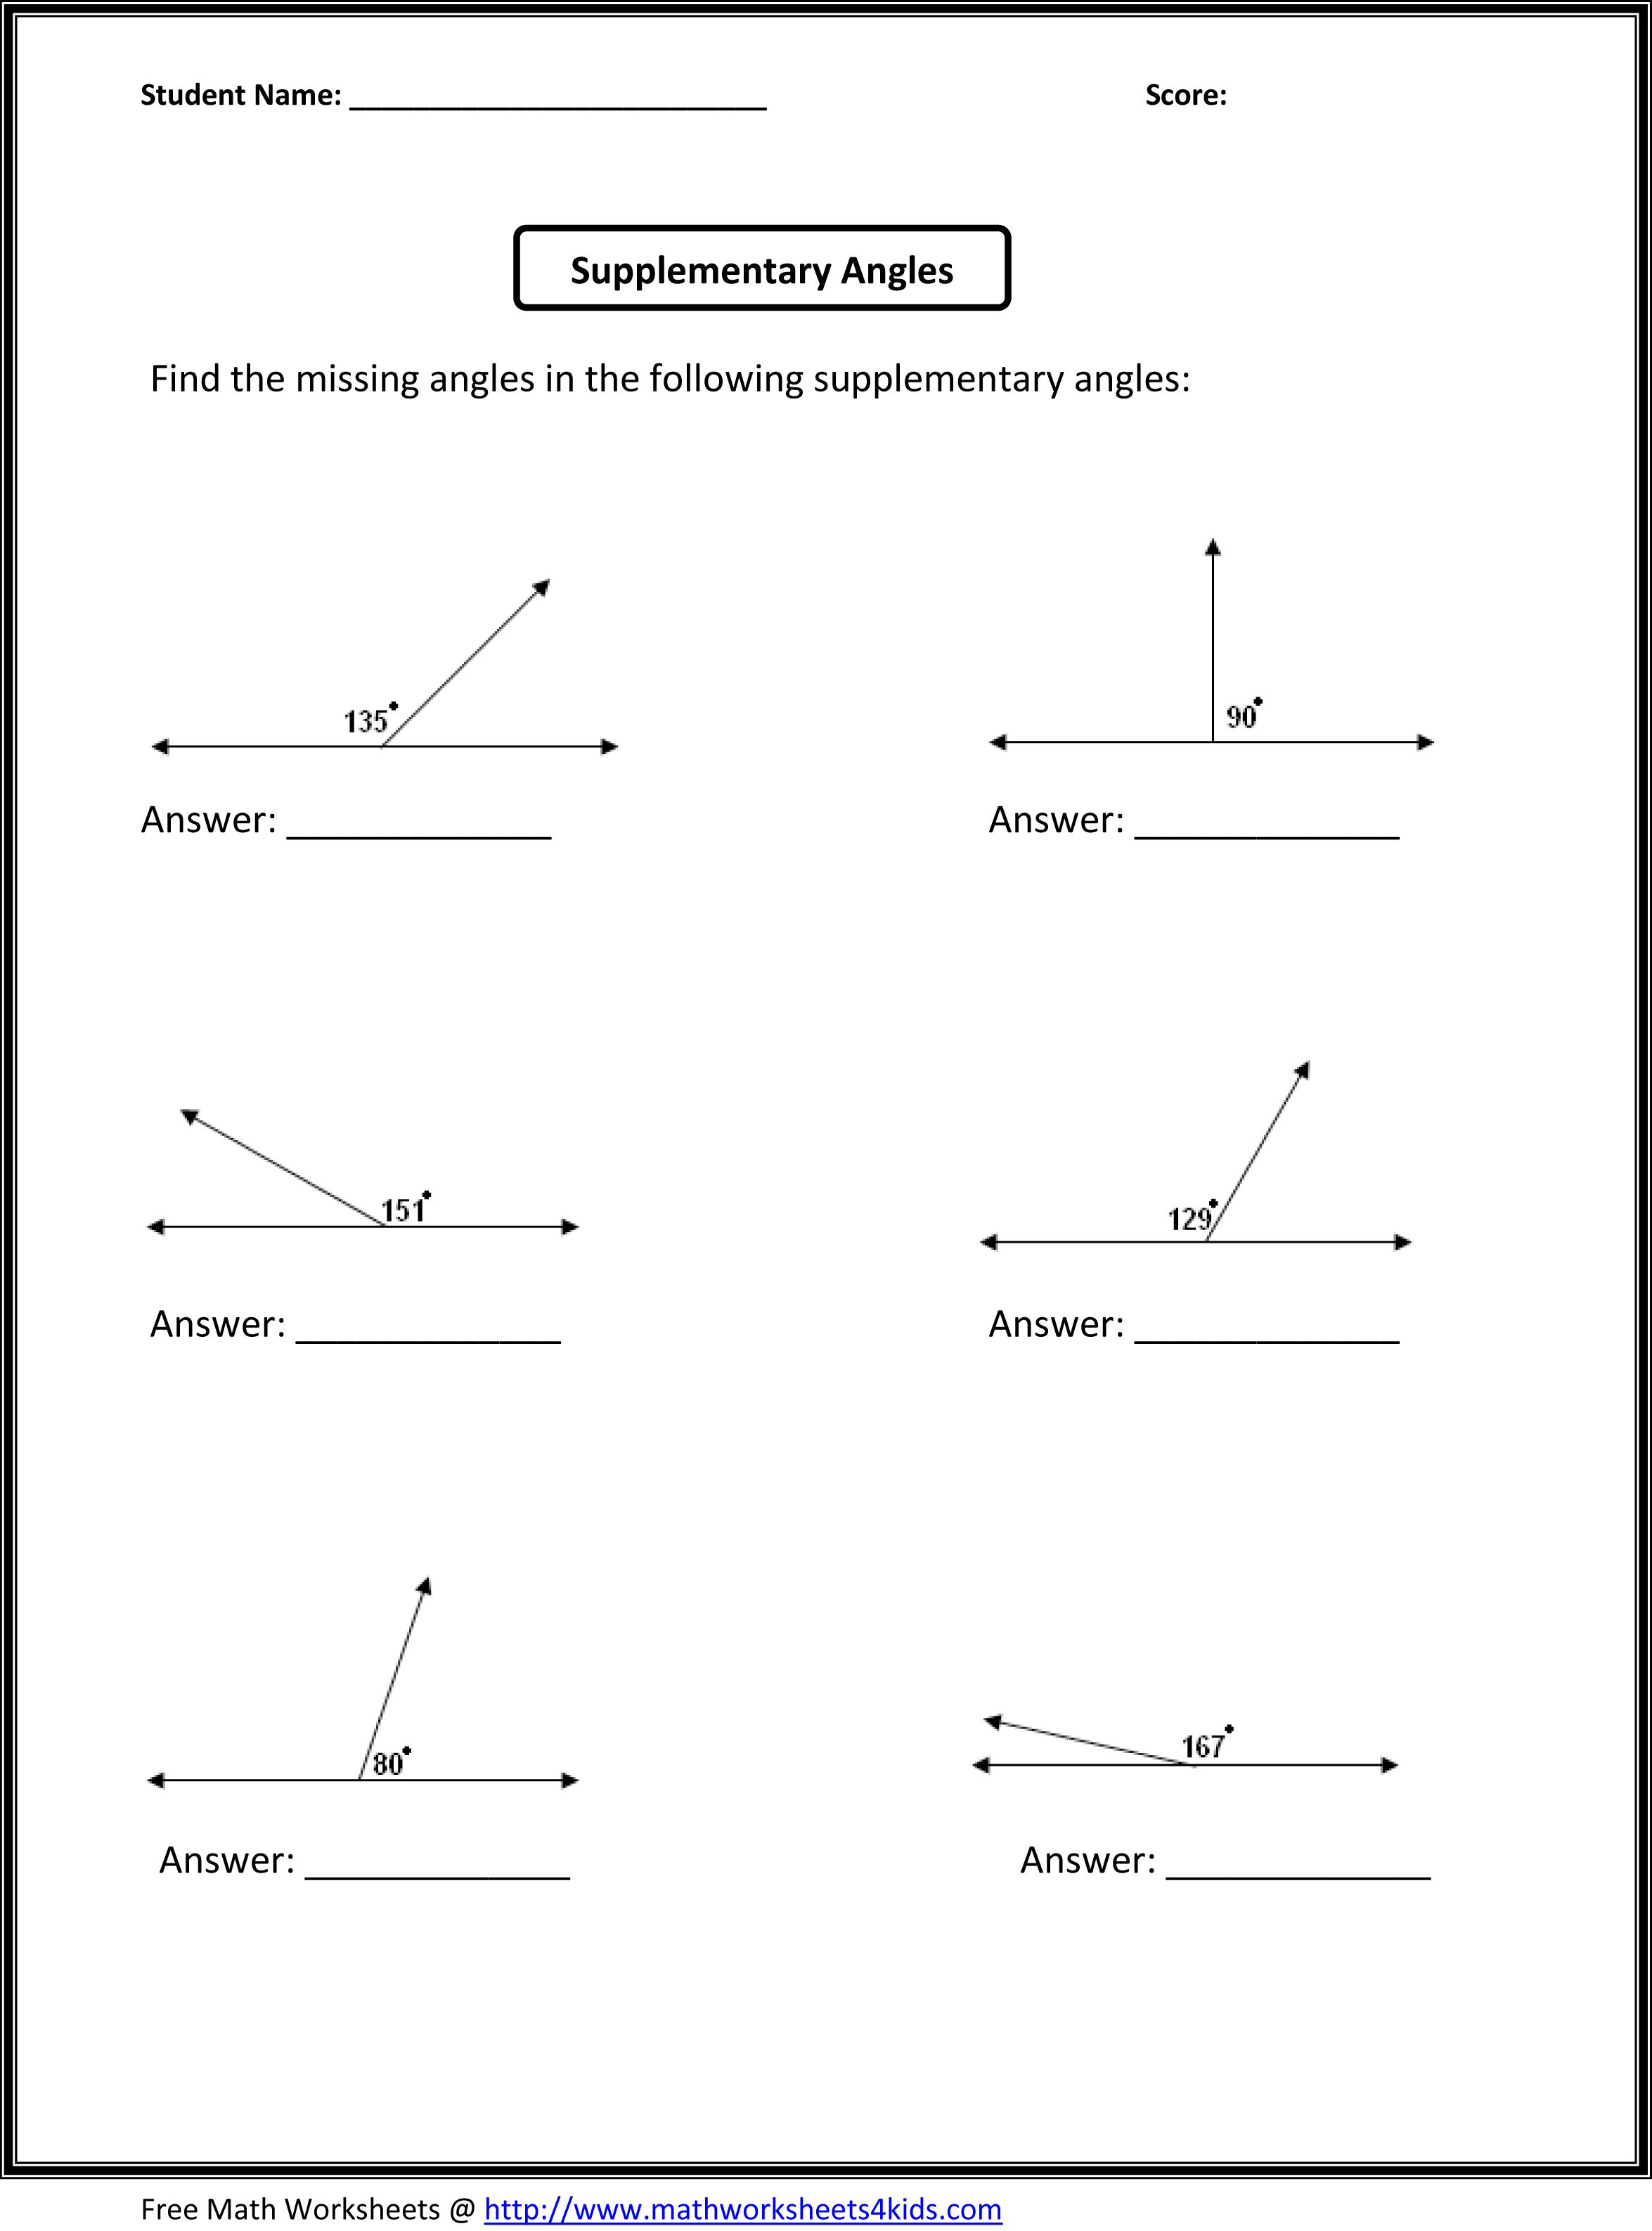 Grade 6 Mathematics Worksheets - Synhoff